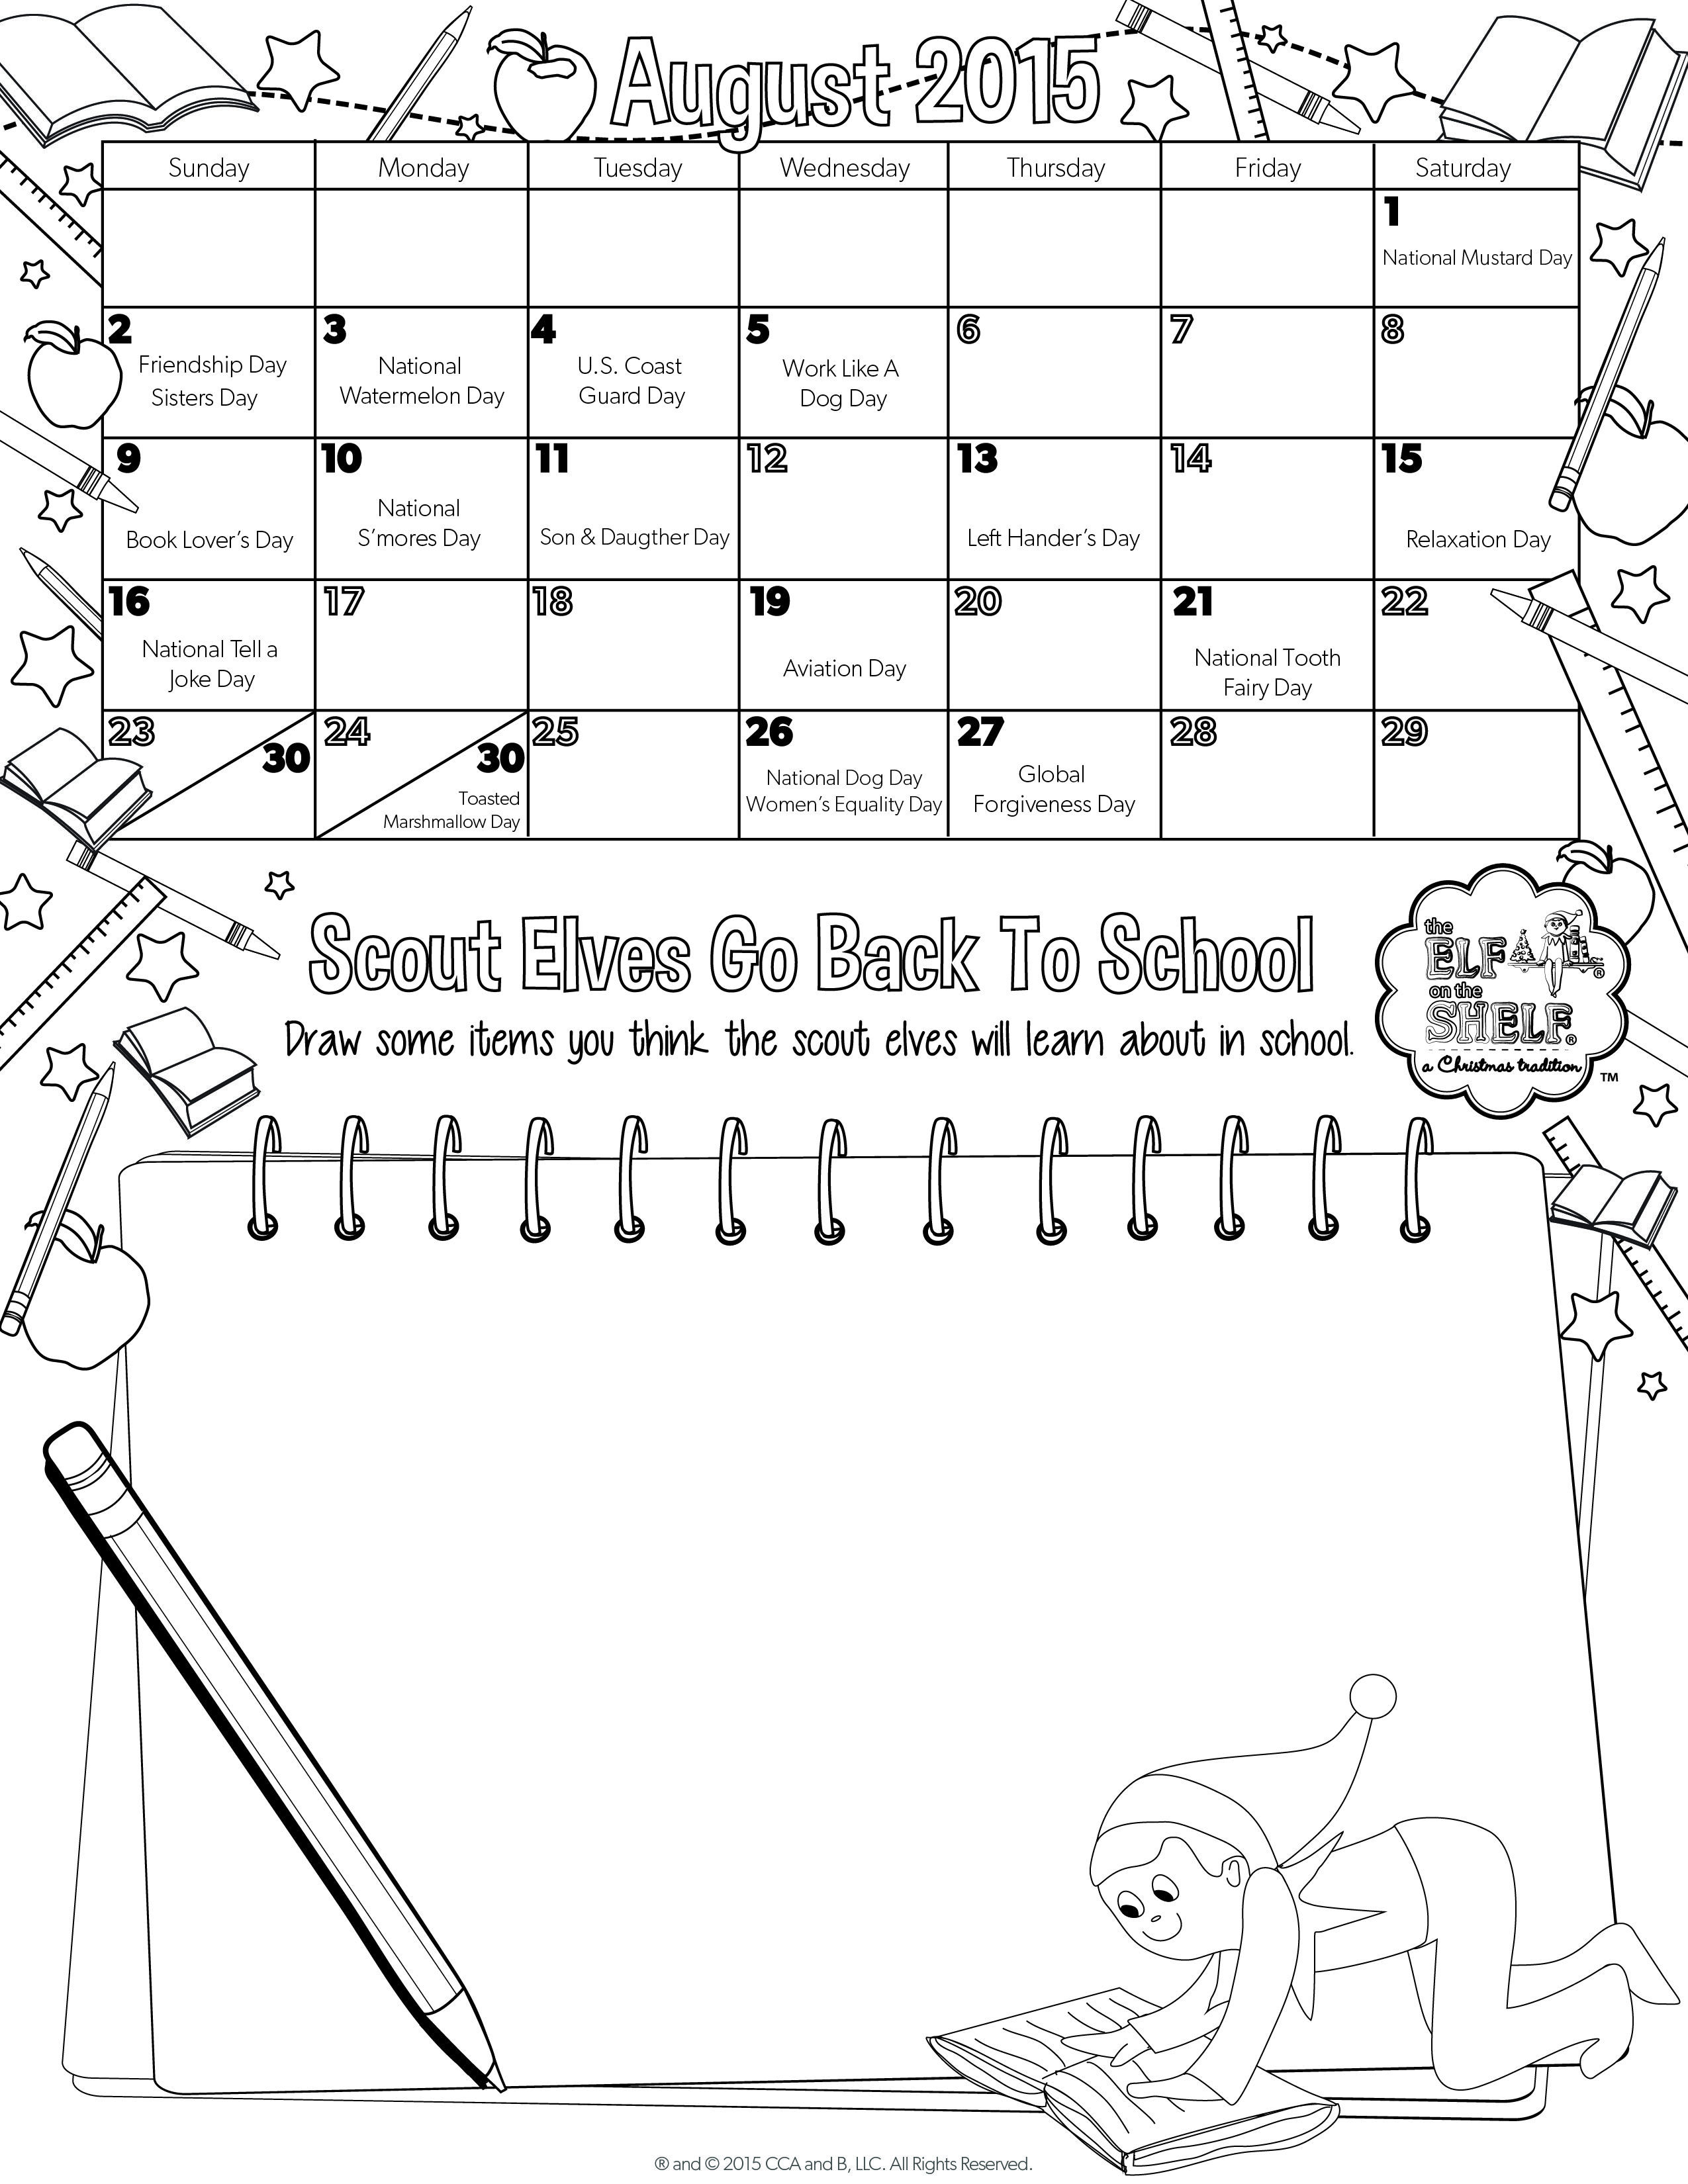 Happy August, friends! | Printable August calendar for kids | The ...